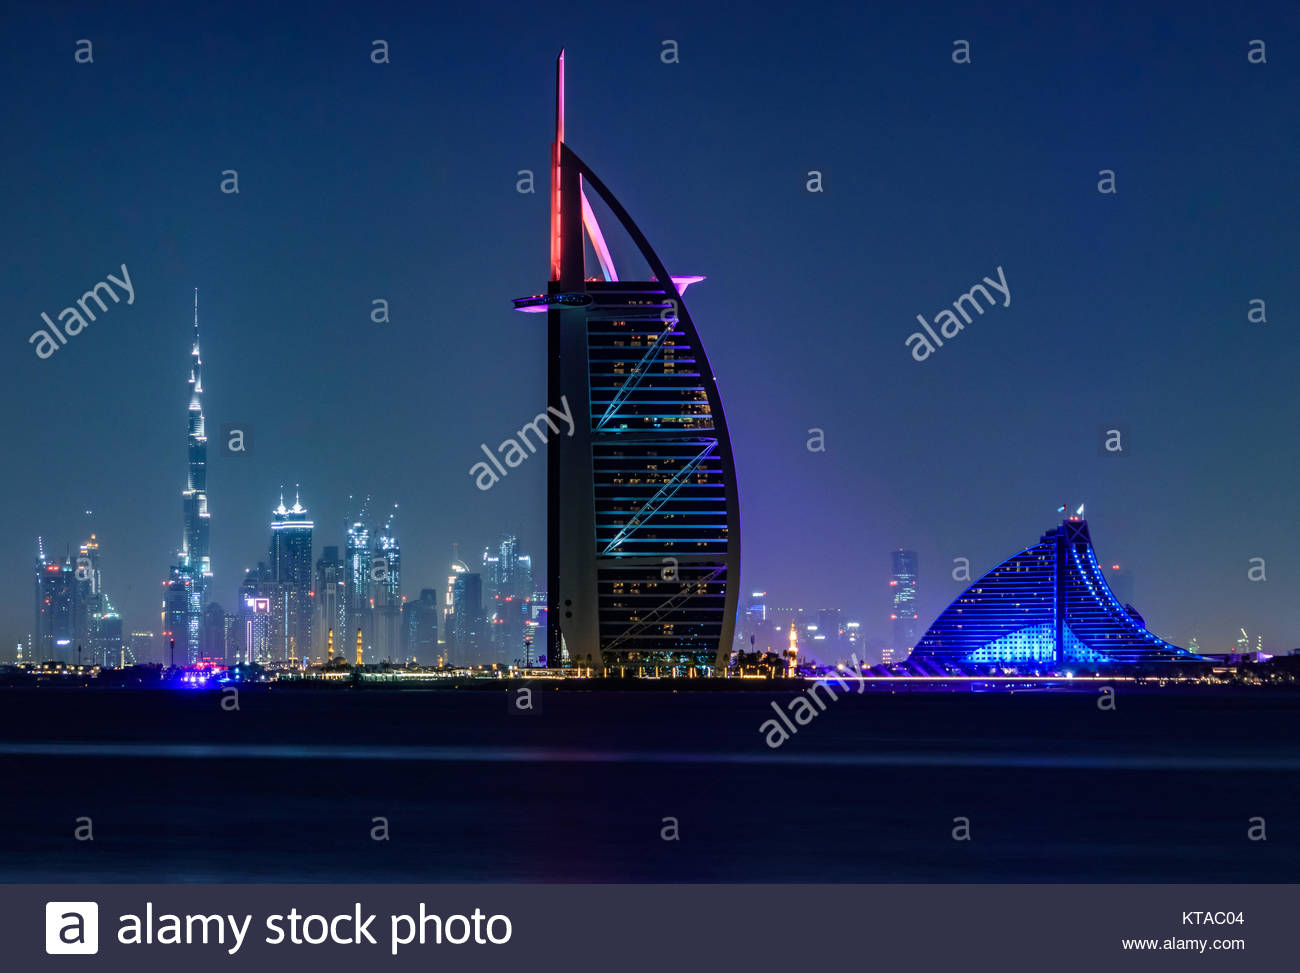 View of Burj Al Arab, Burj Khalifa, and Jumeirah Beach Hotel from Palm Jumeirah. - Stock Image